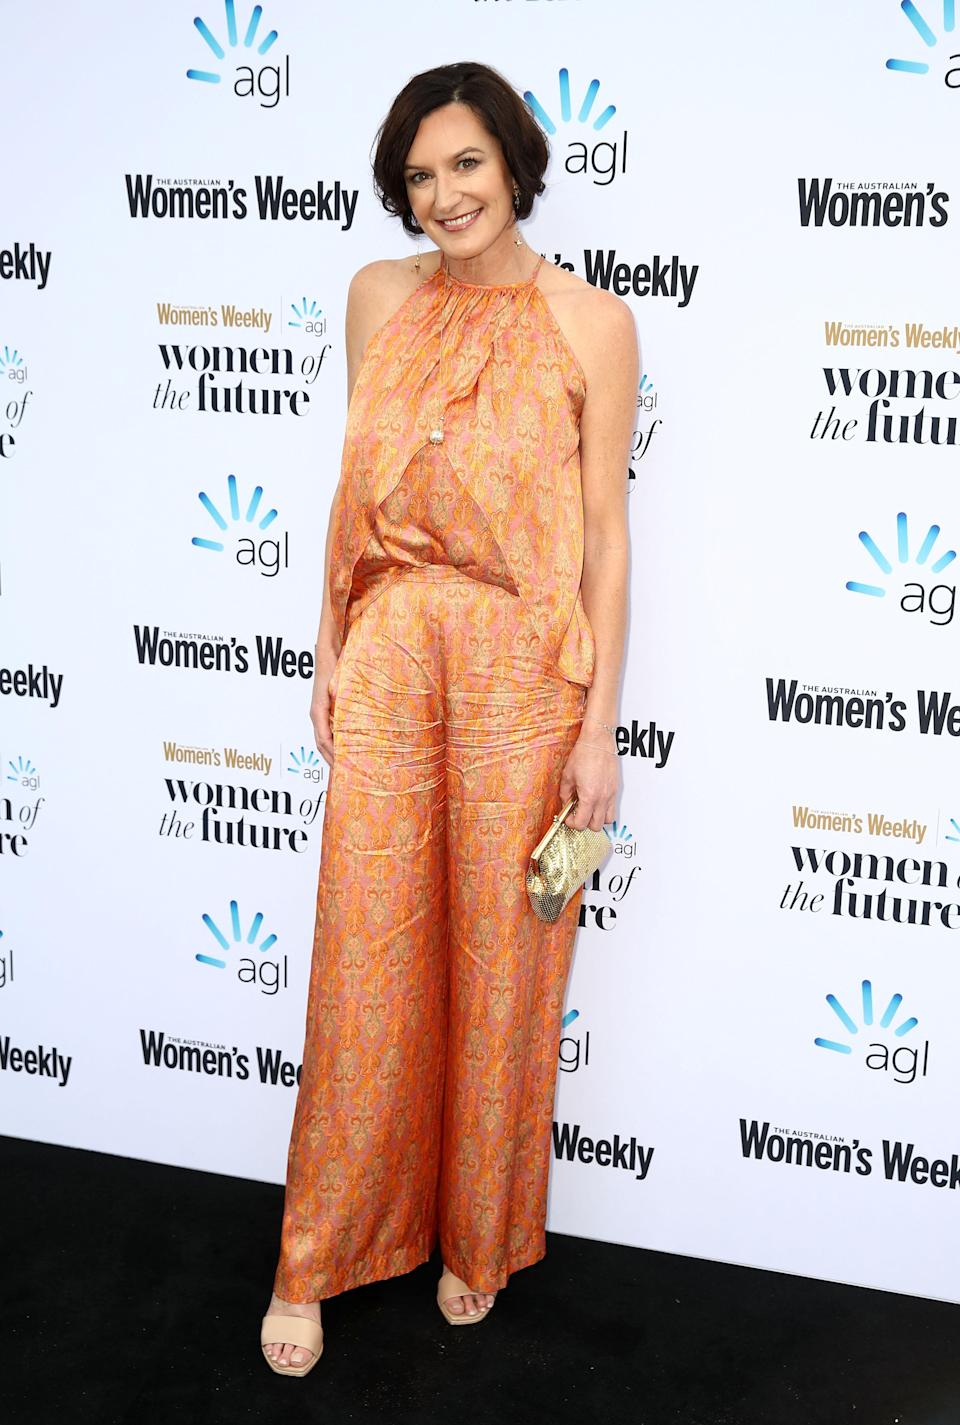 She arrived at the Quay in a stunning orange jumpsuit. Photo: Getty